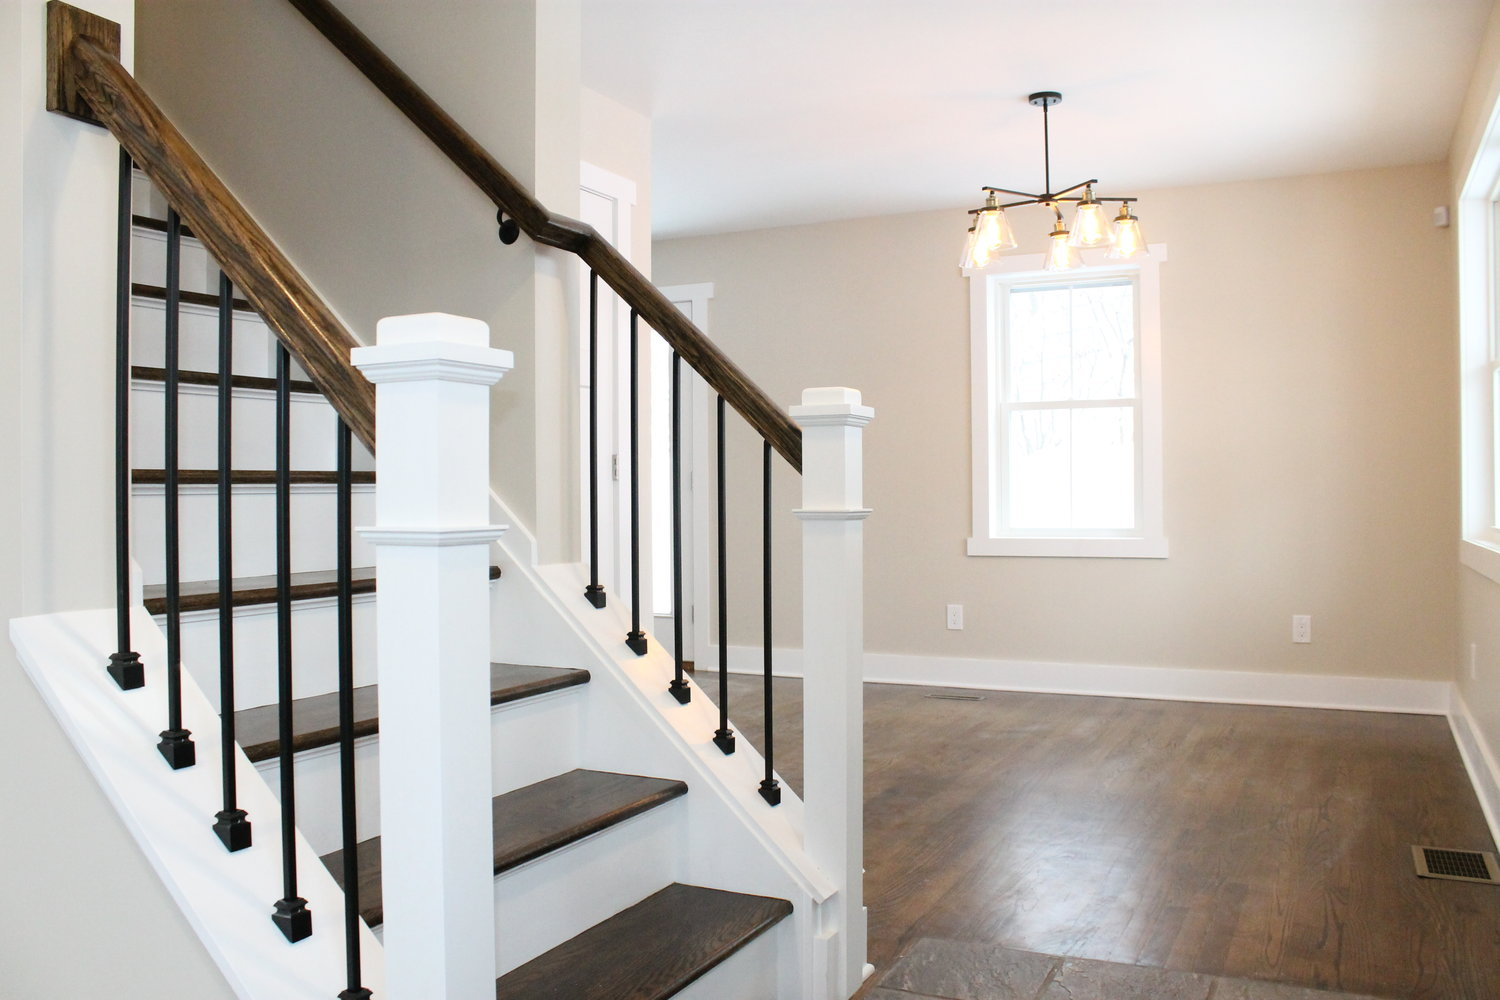 About — milltown homes